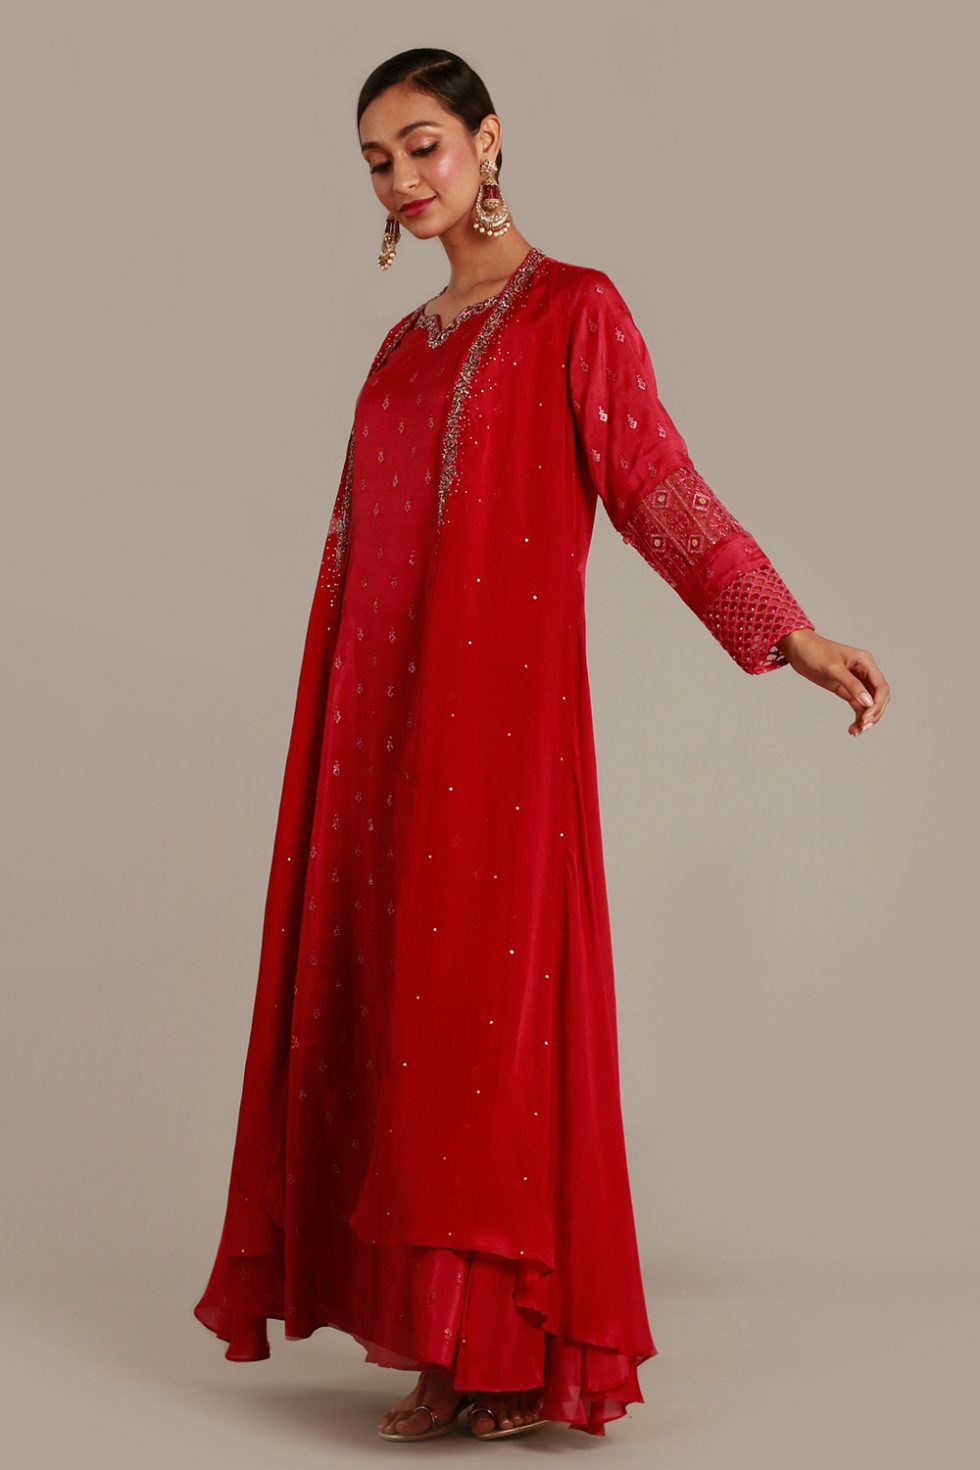 Magenta pink long kurti with thread work and butis and matching jacket with silver embellishments